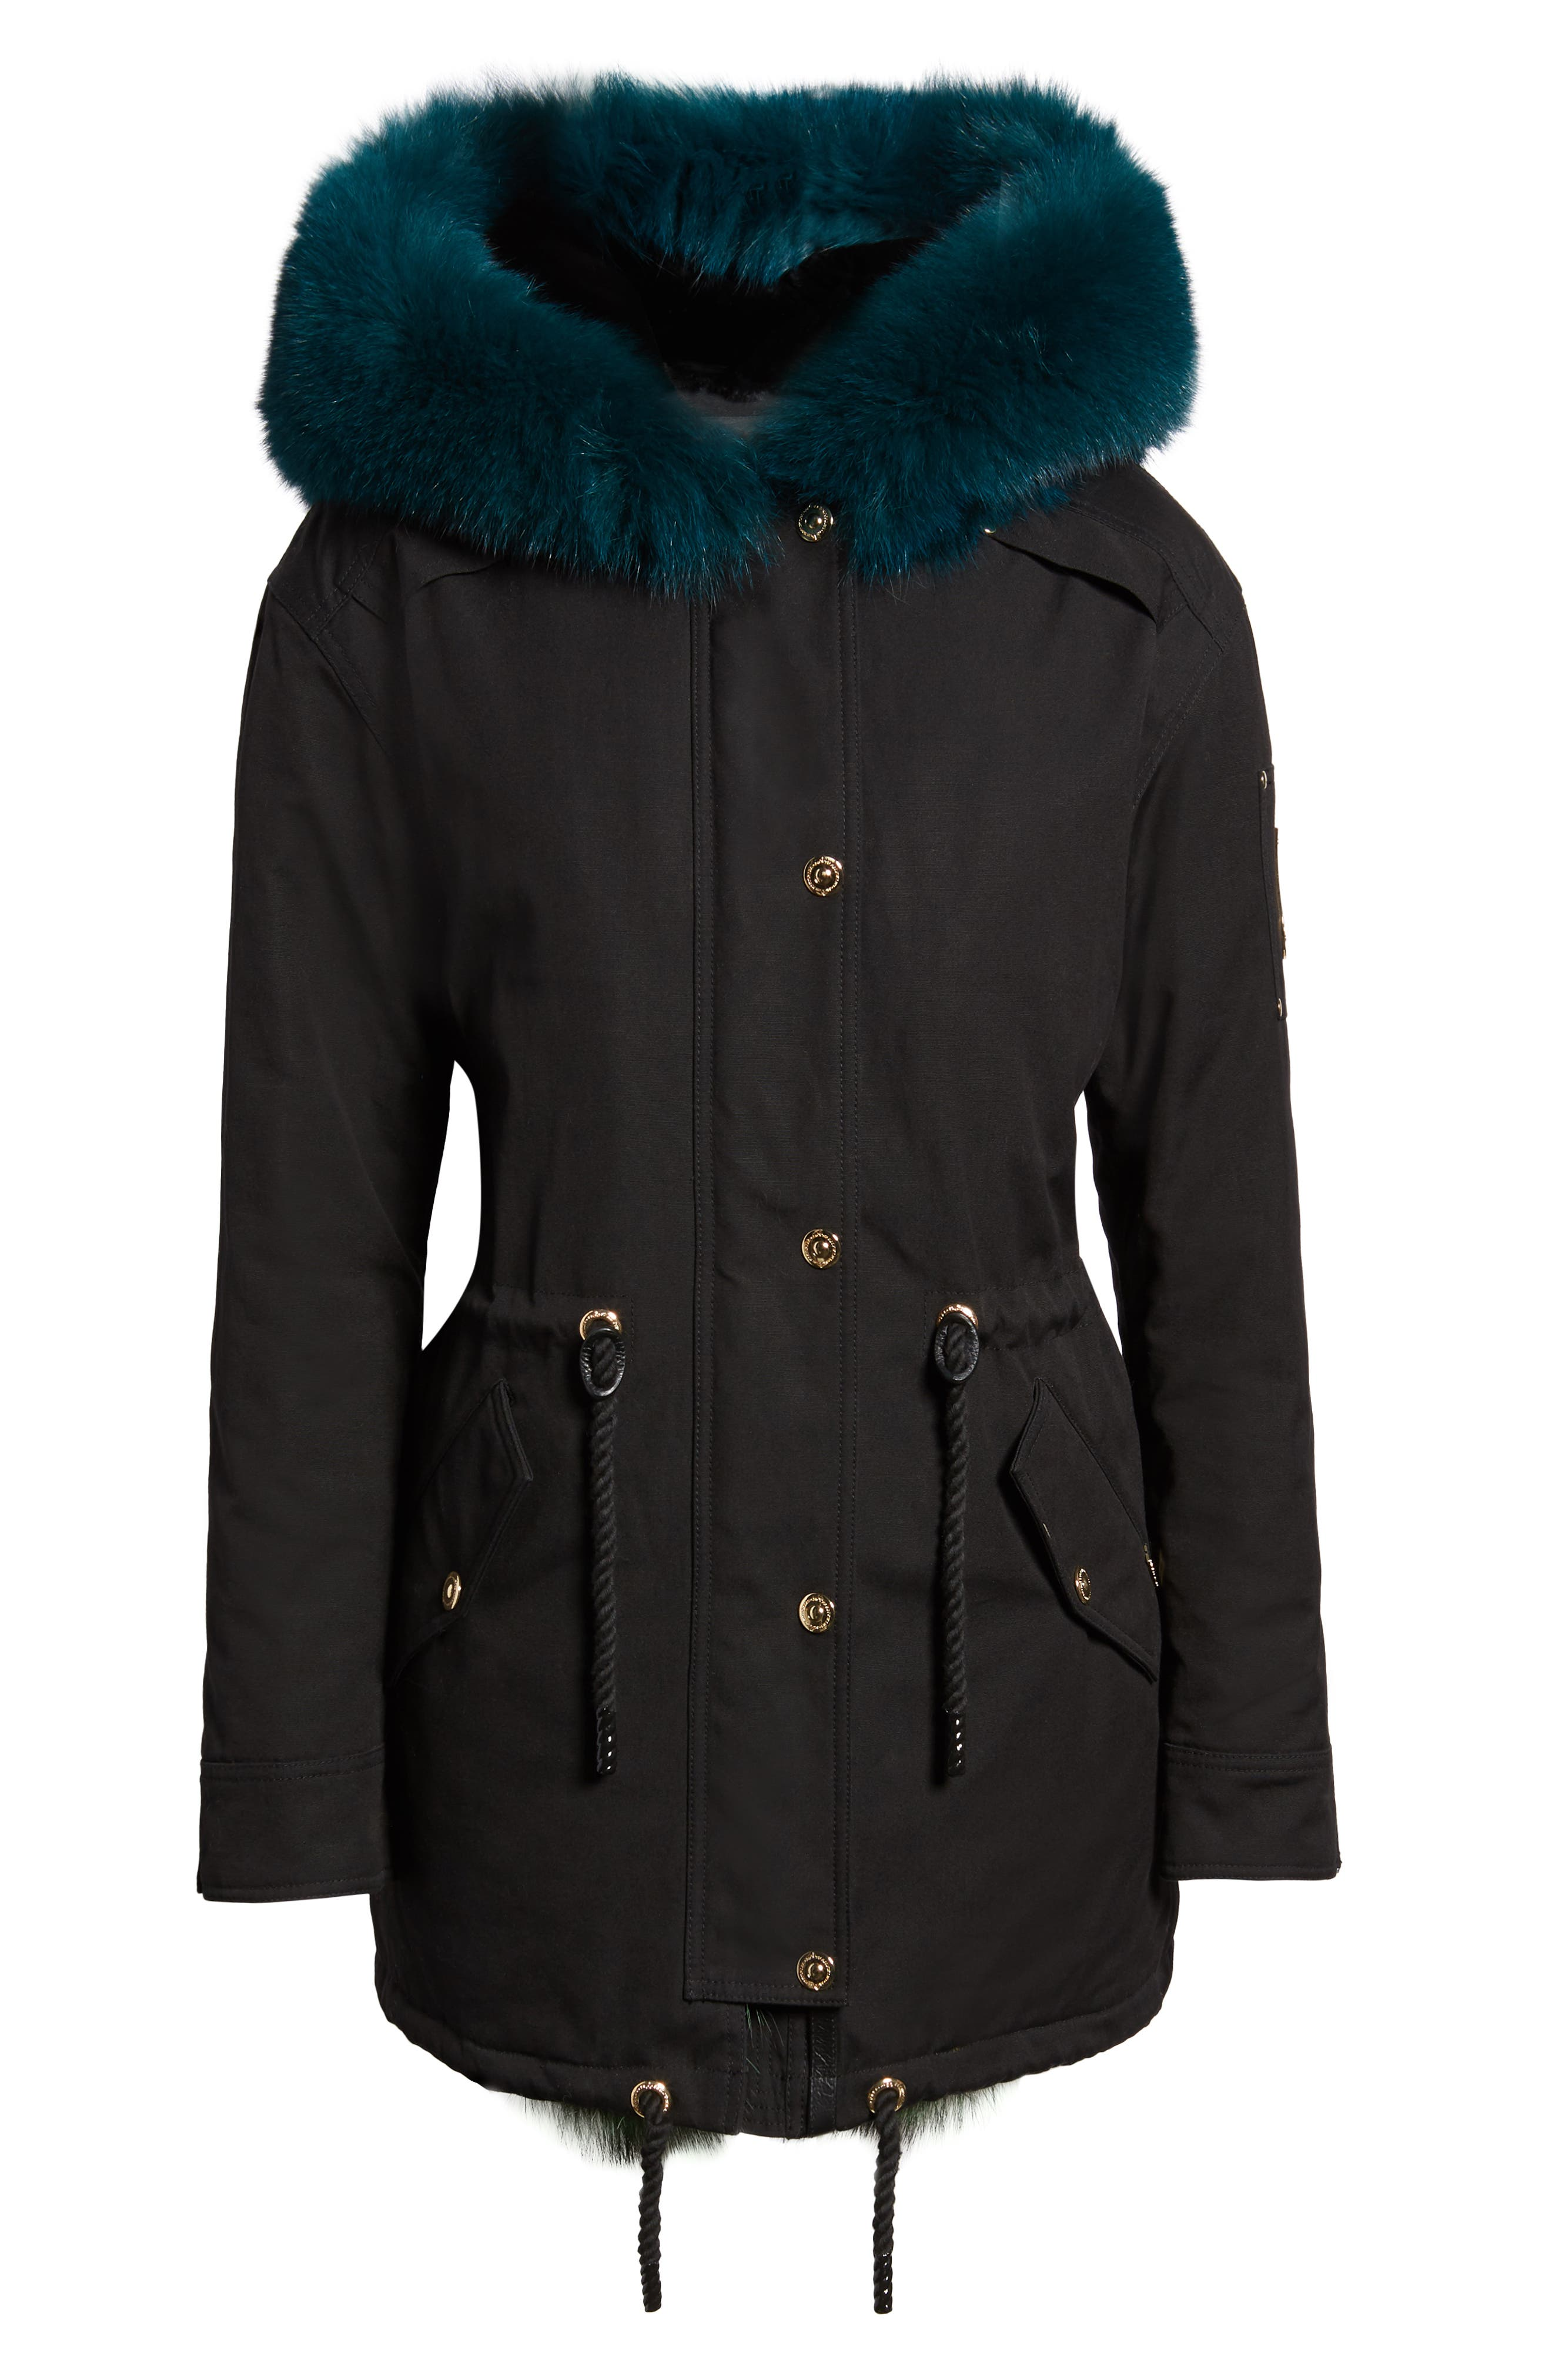 Foxy Stellar Parka with Genuine Rabbit Fur & Genuine Fox Fur,                             Alternate thumbnail 5, color,                             BLACK/ TEAL/ SKY BLUE/ GREEN